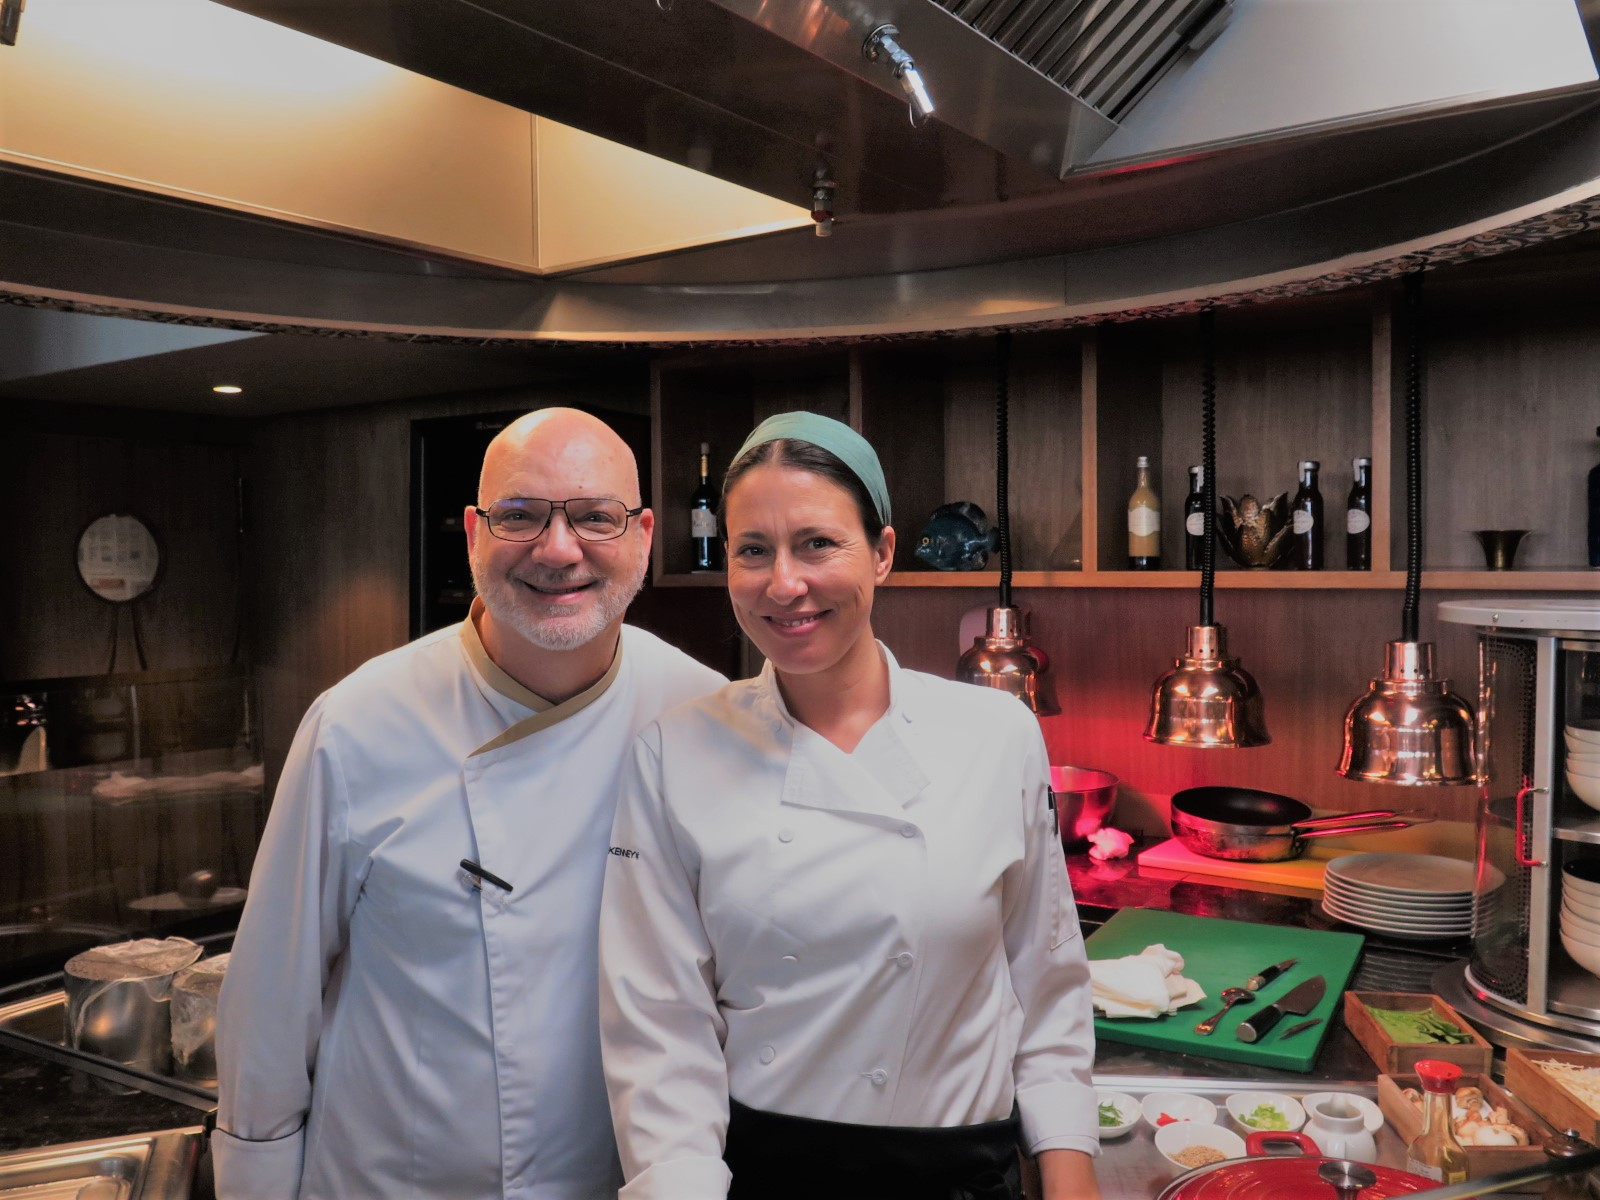 Chef Eddy Melo e Chef Sarah Maraval (The Green Chef)